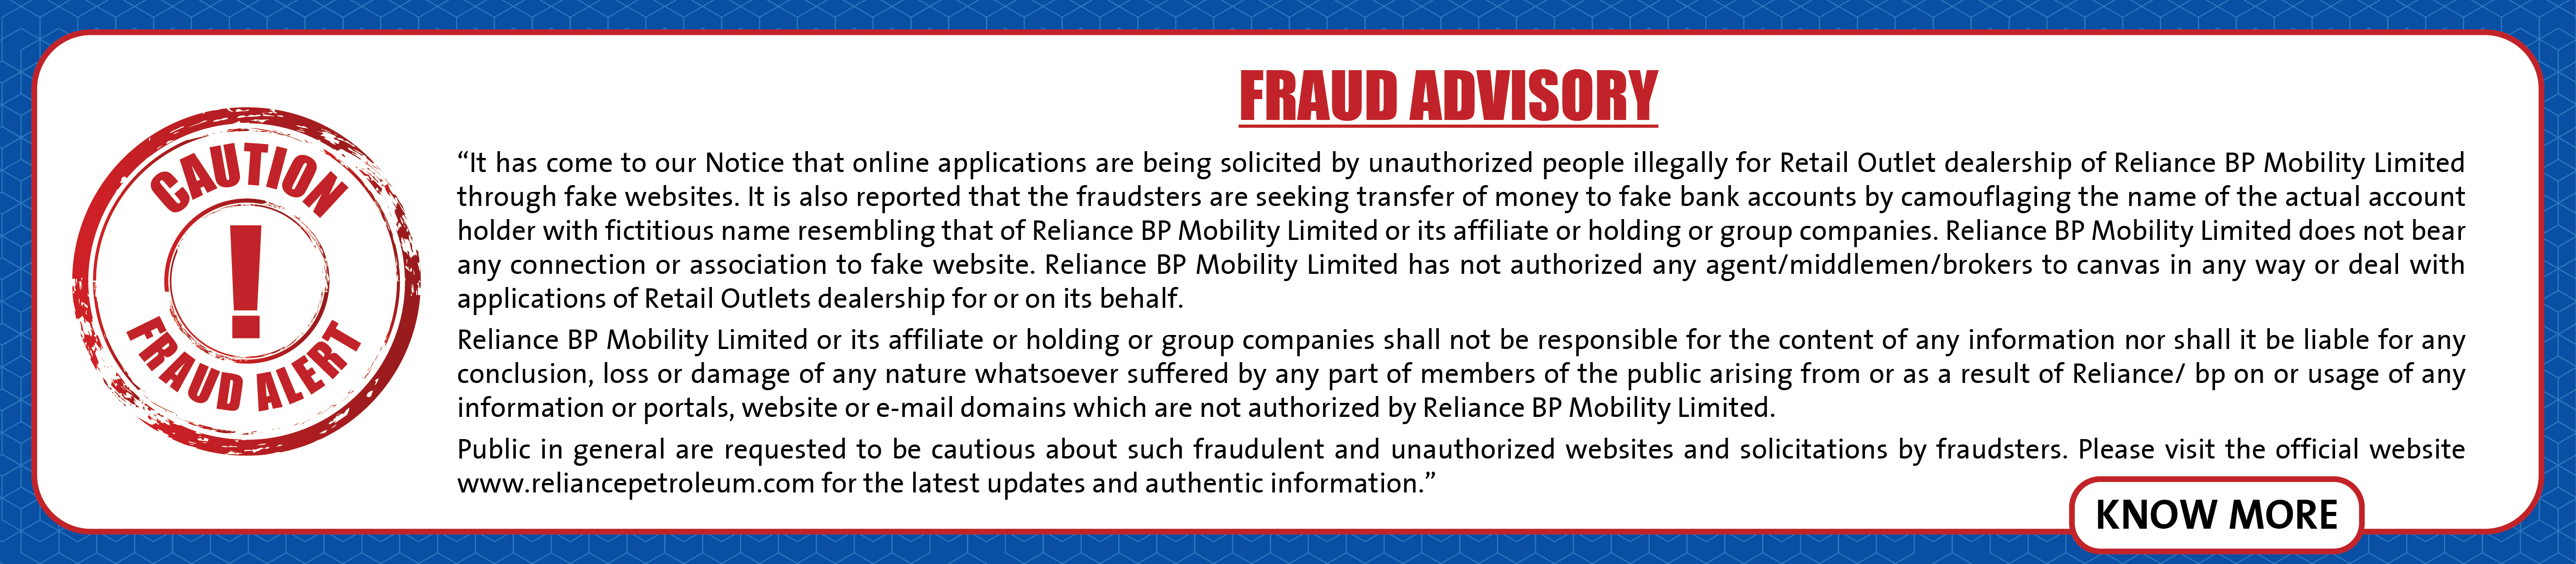 Fraud Advisory